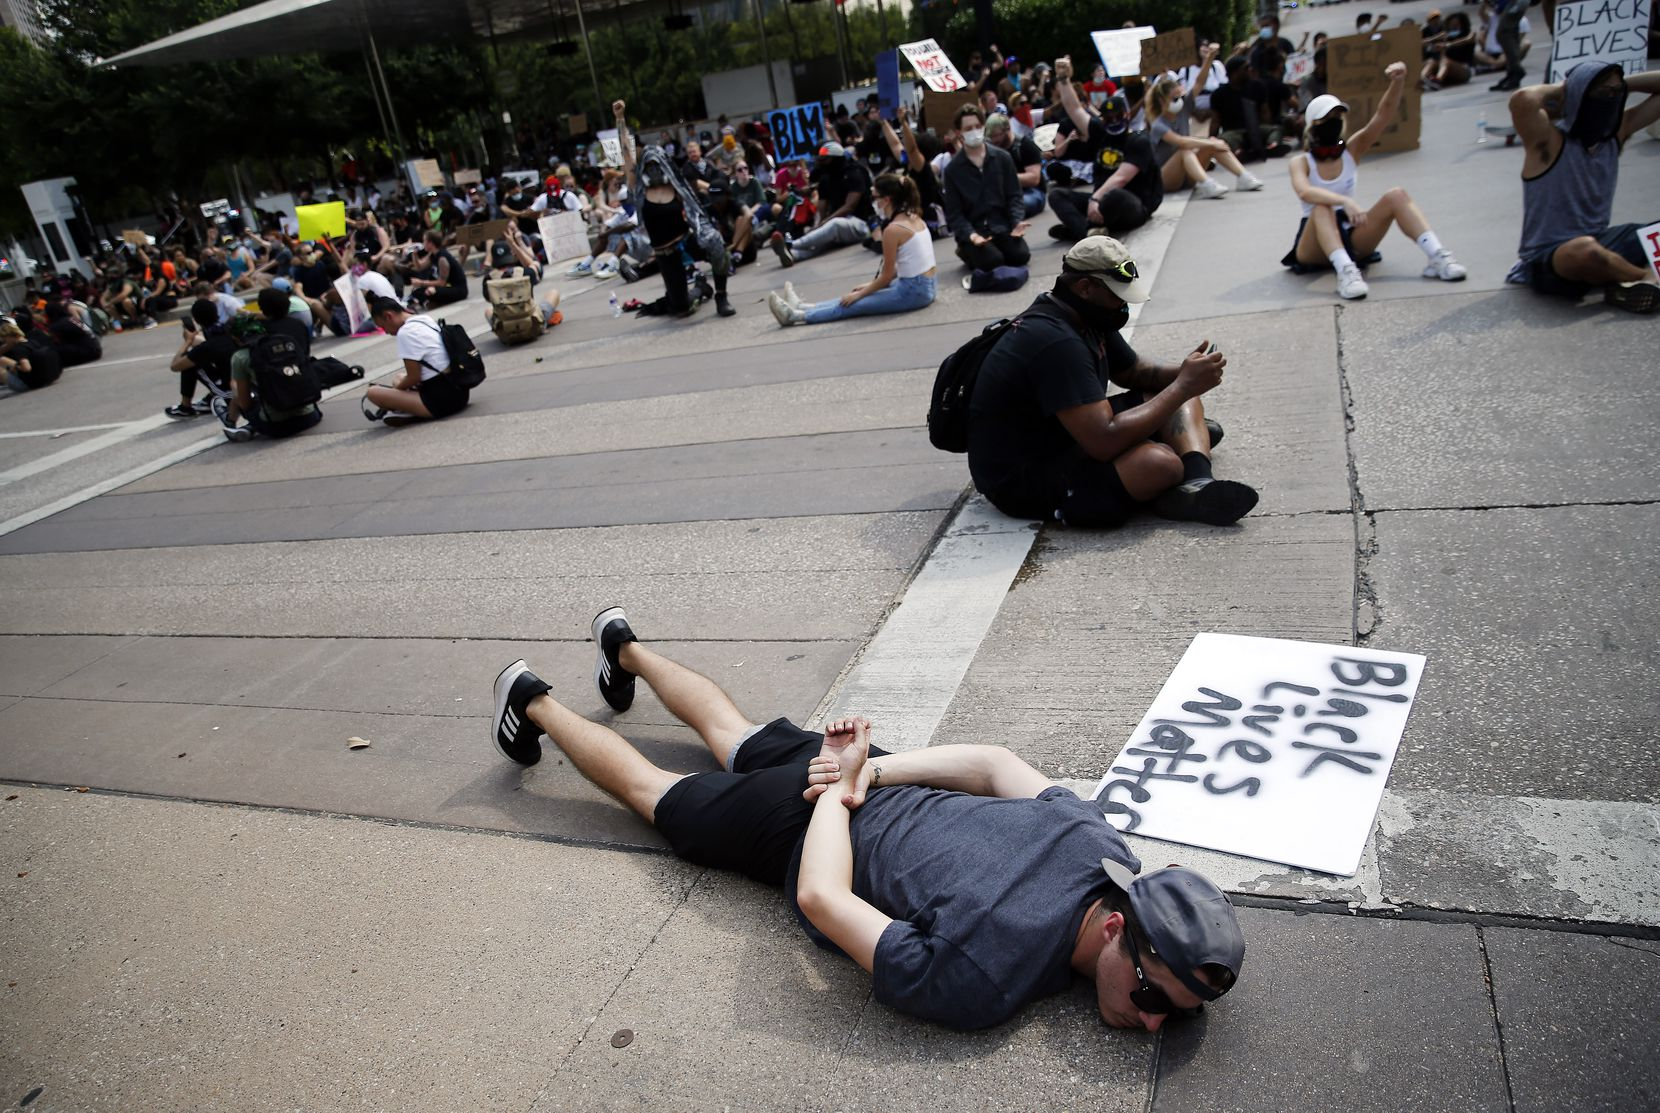 Protestors supporting Black Lives Matters block an intersection at Klyde Warren Park for 8 minutes and 46 seconds, the time it took for the in-custody death of George Floyd. The march wound through downtown Dallas, Tuesday, June 2, 2020.